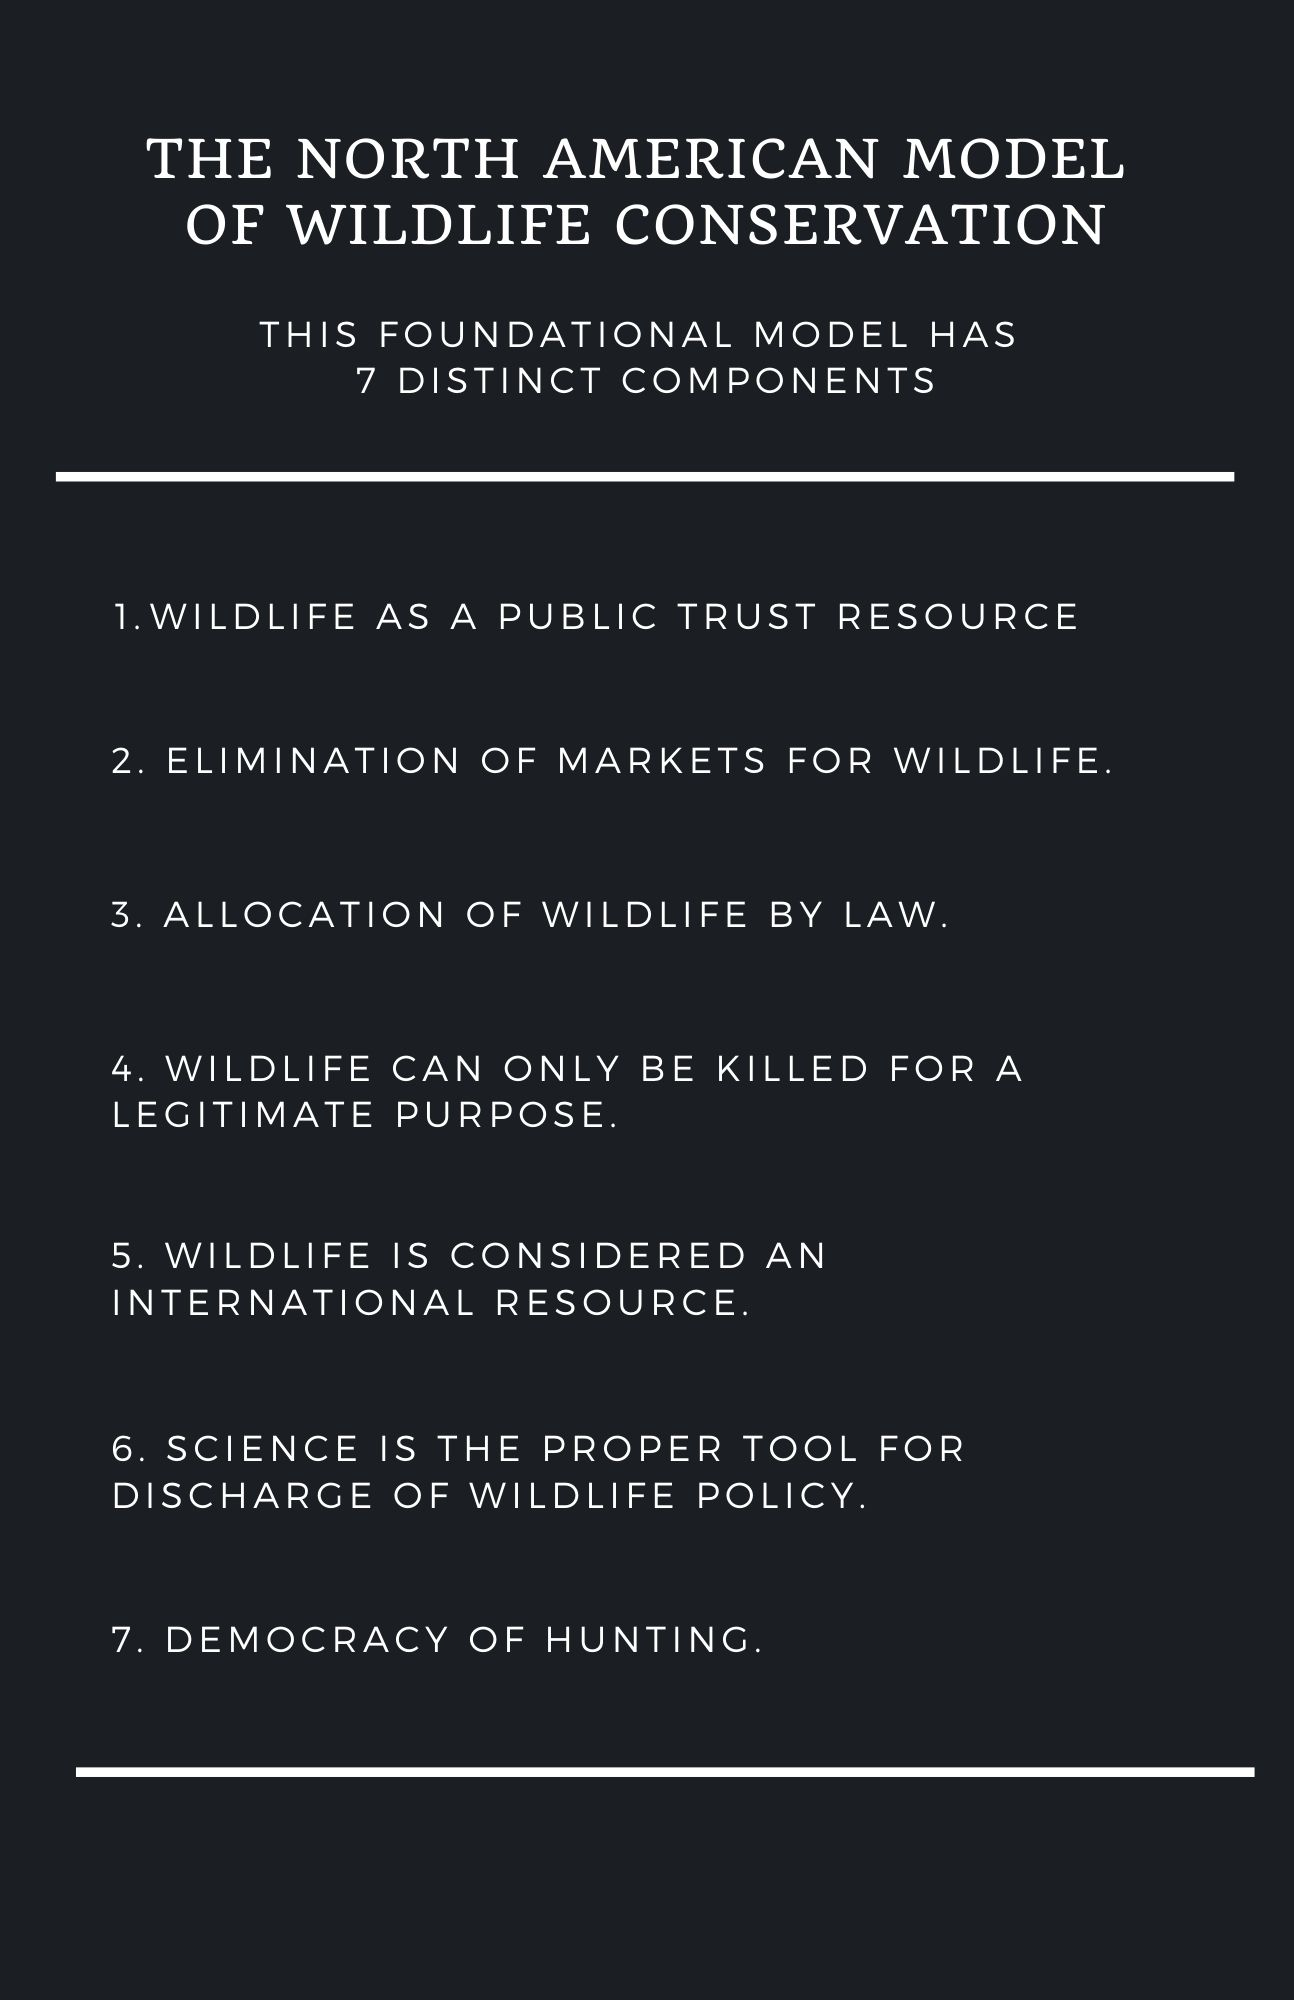 The_North_American_Model_of_Wildlife_Conservation.jpg